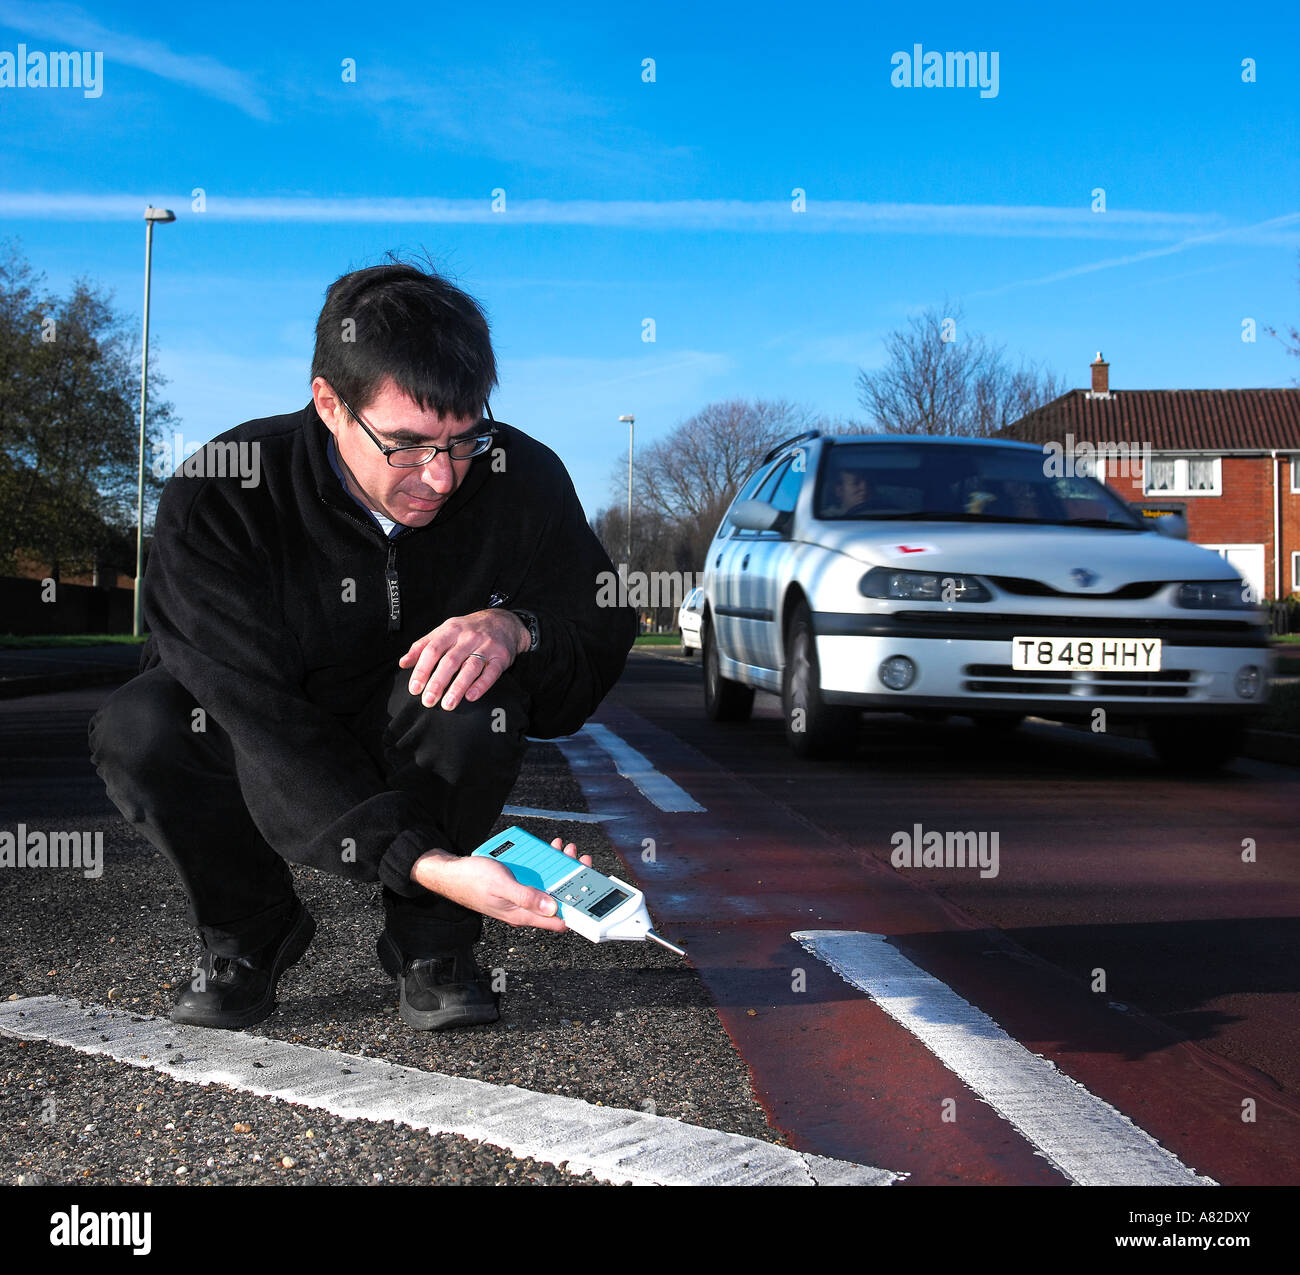 Inspector measuring road noise levels Stock Photo: 11965394